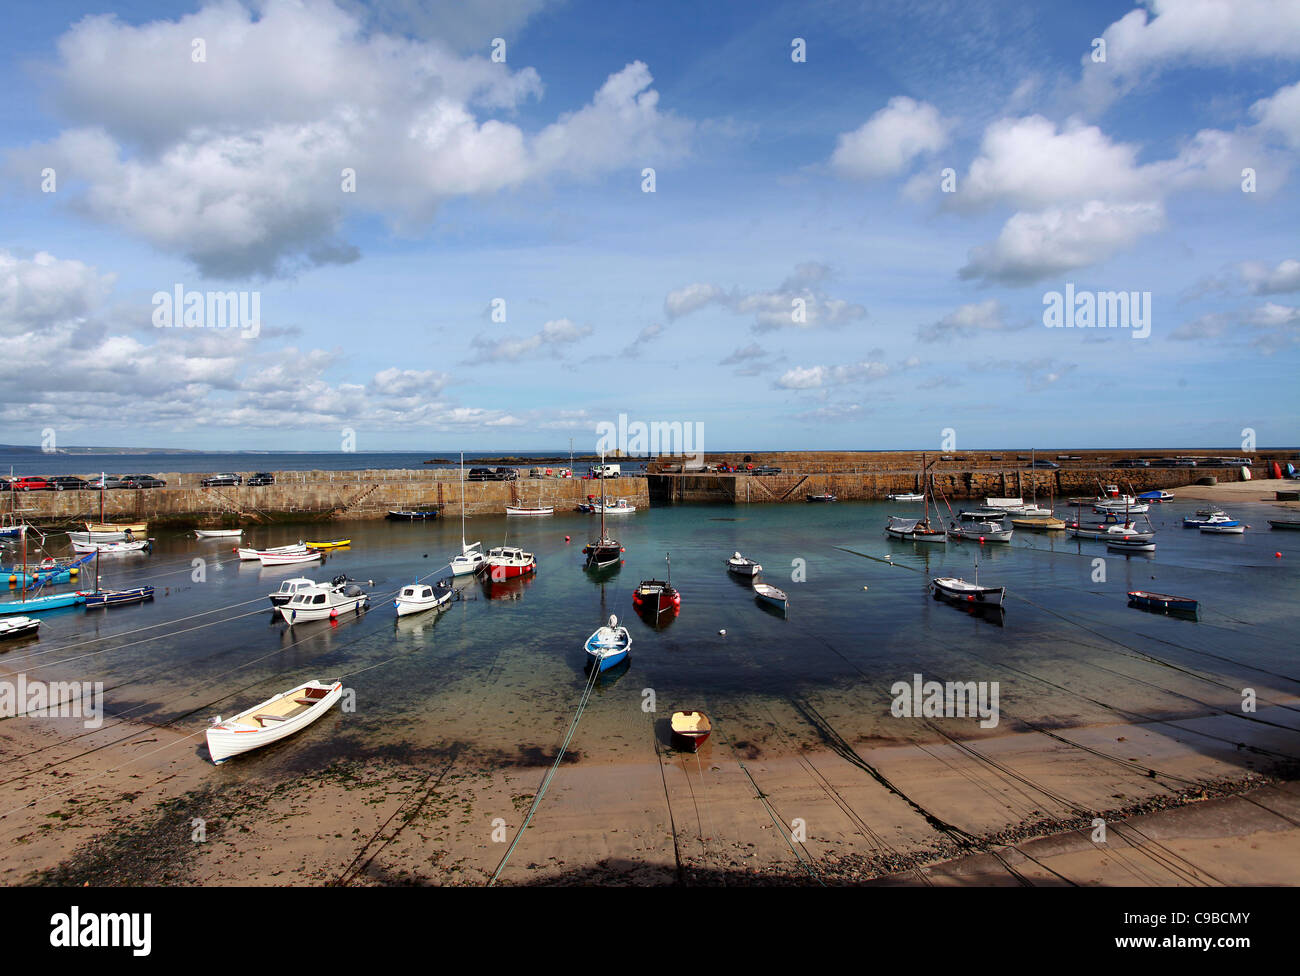 General view of the harbour bay in St Ives fishing town in Cornwall, United Kingdom. - Stock Image